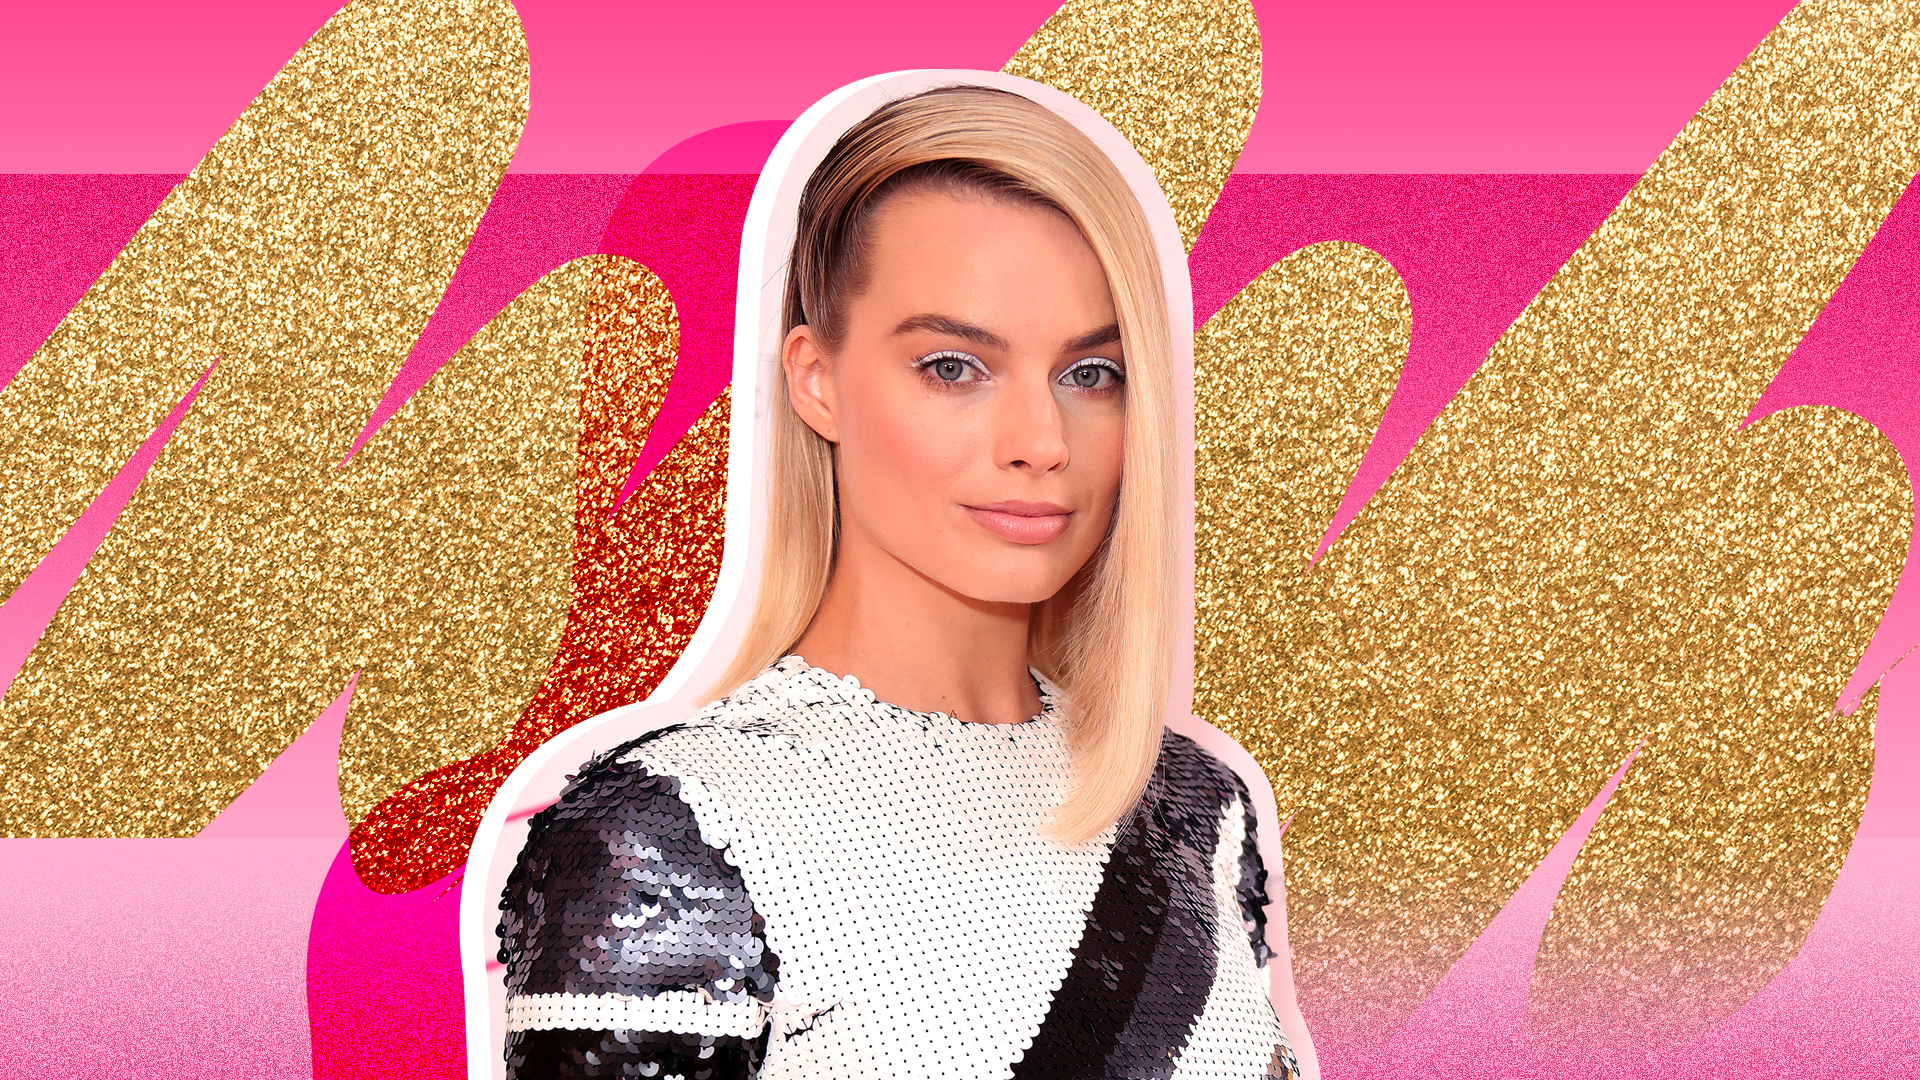 10 Surprising Facts You Definitely Didn't Know About Margot Robbie